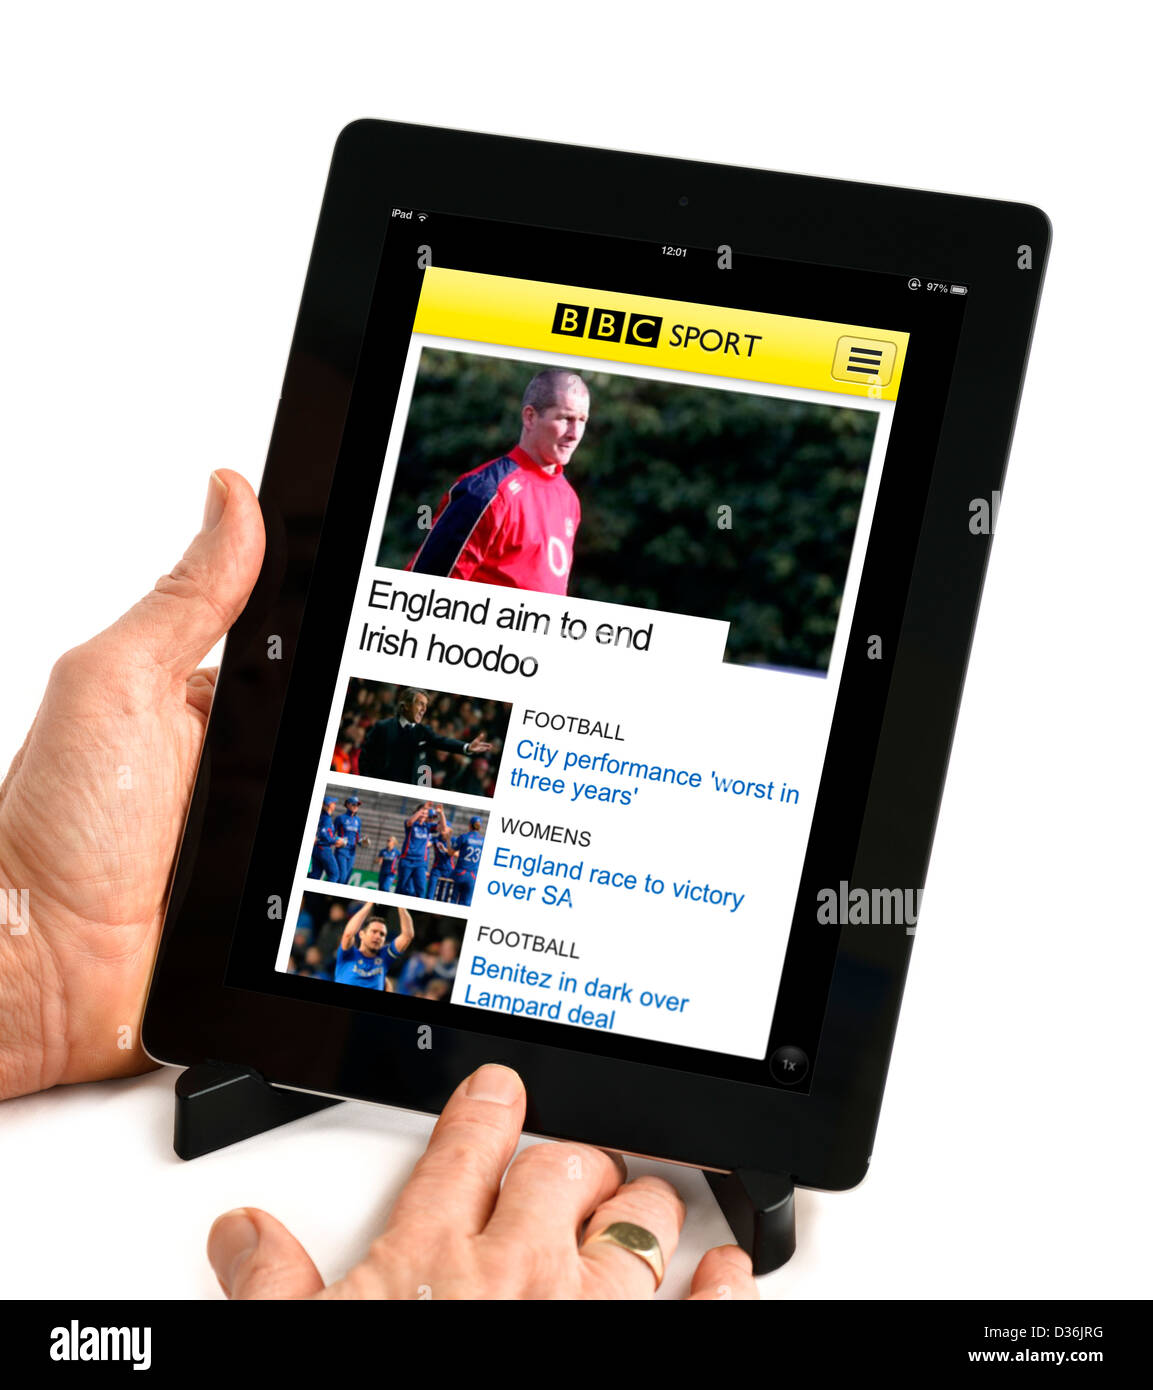 The BBC Sport mobile app on a 4th generation Apple iPad, UK - Stock Image